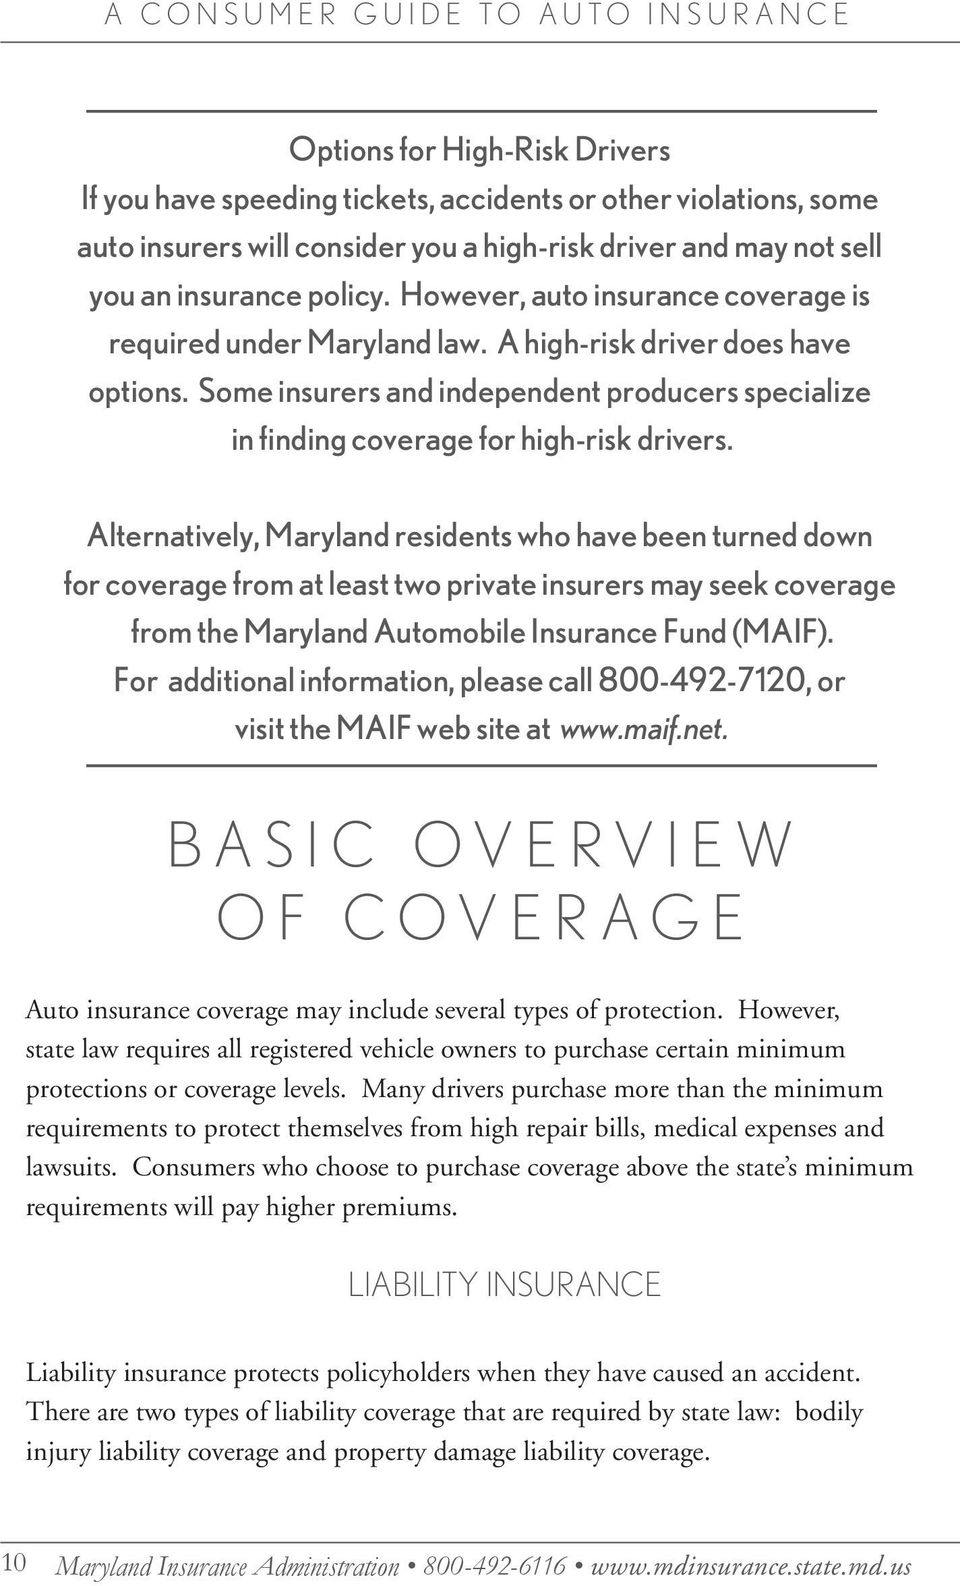 Alternatively, Maryland residents who have been turned down for coverage from at least two private insurers may seek coverage from the Maryland Automobile Insurance Fund (MAIF).